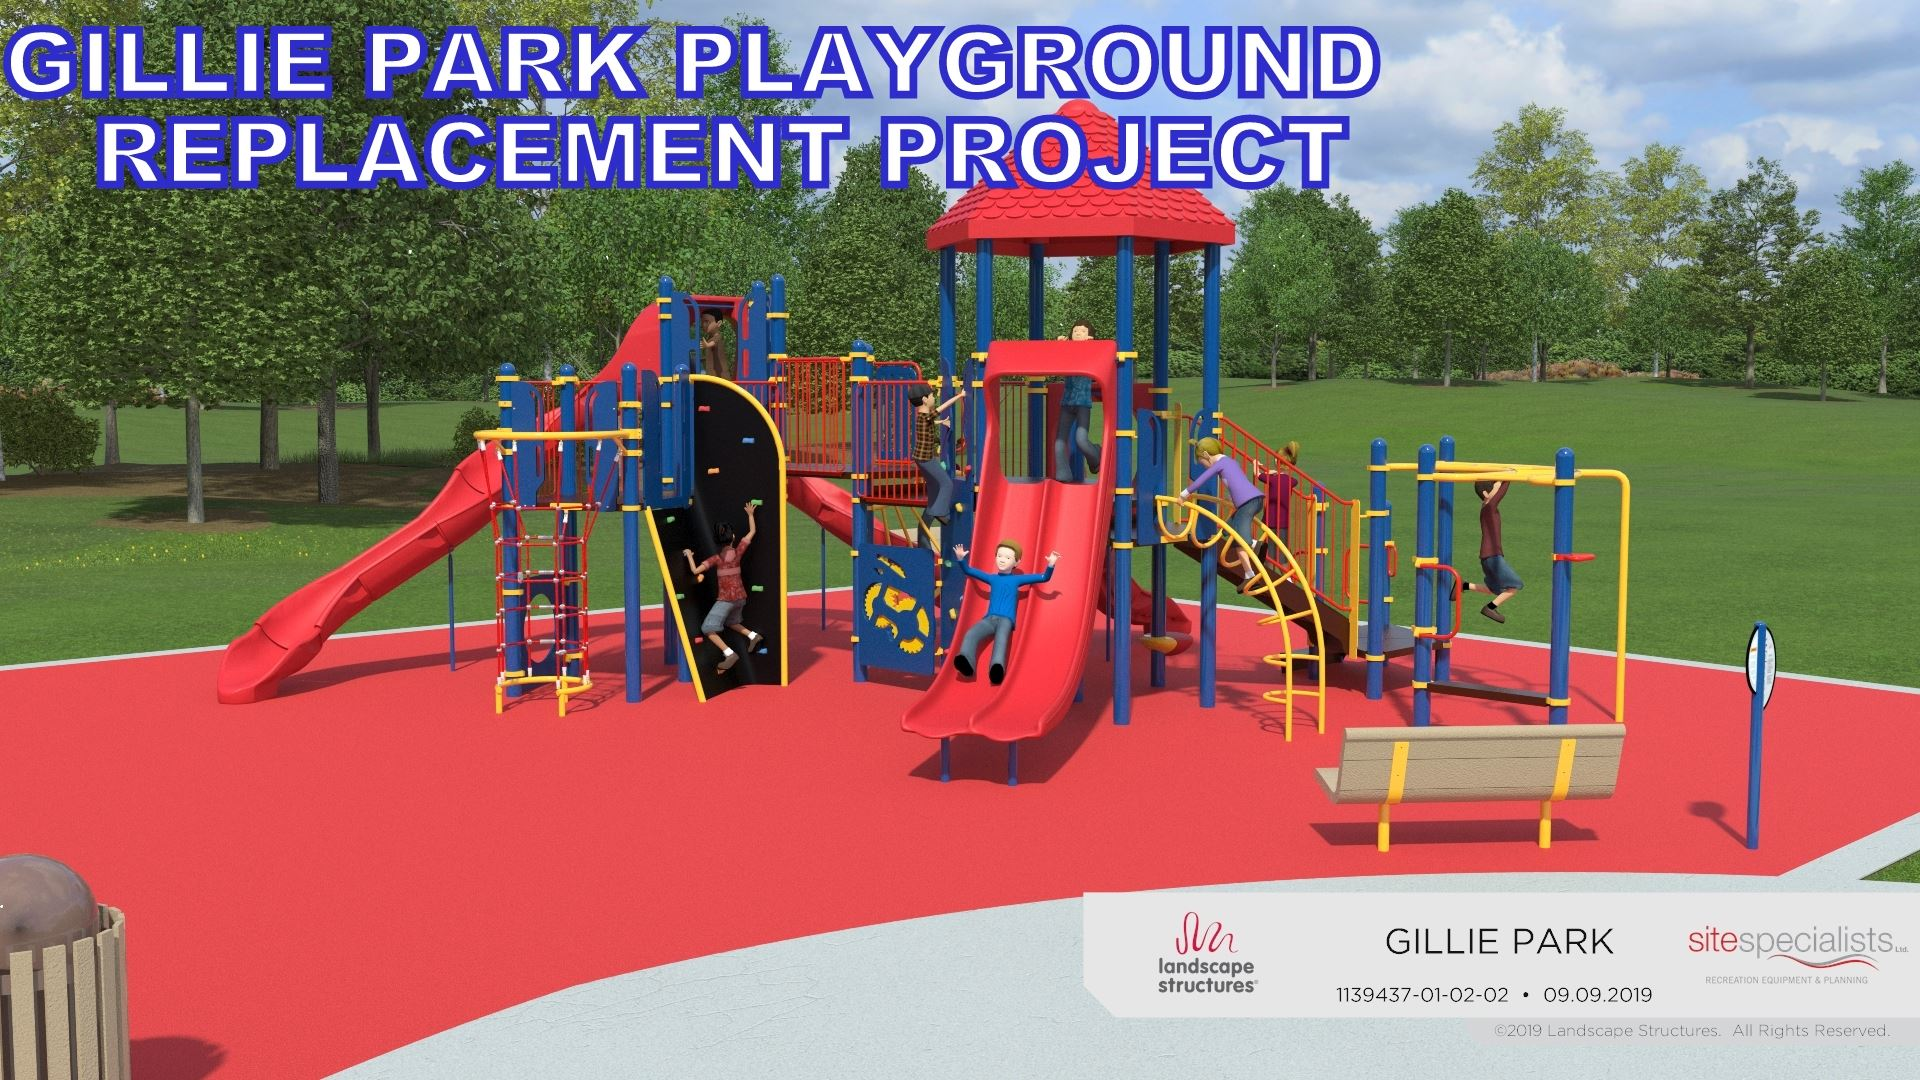 gillie park playground rendering 5-12 yr olds